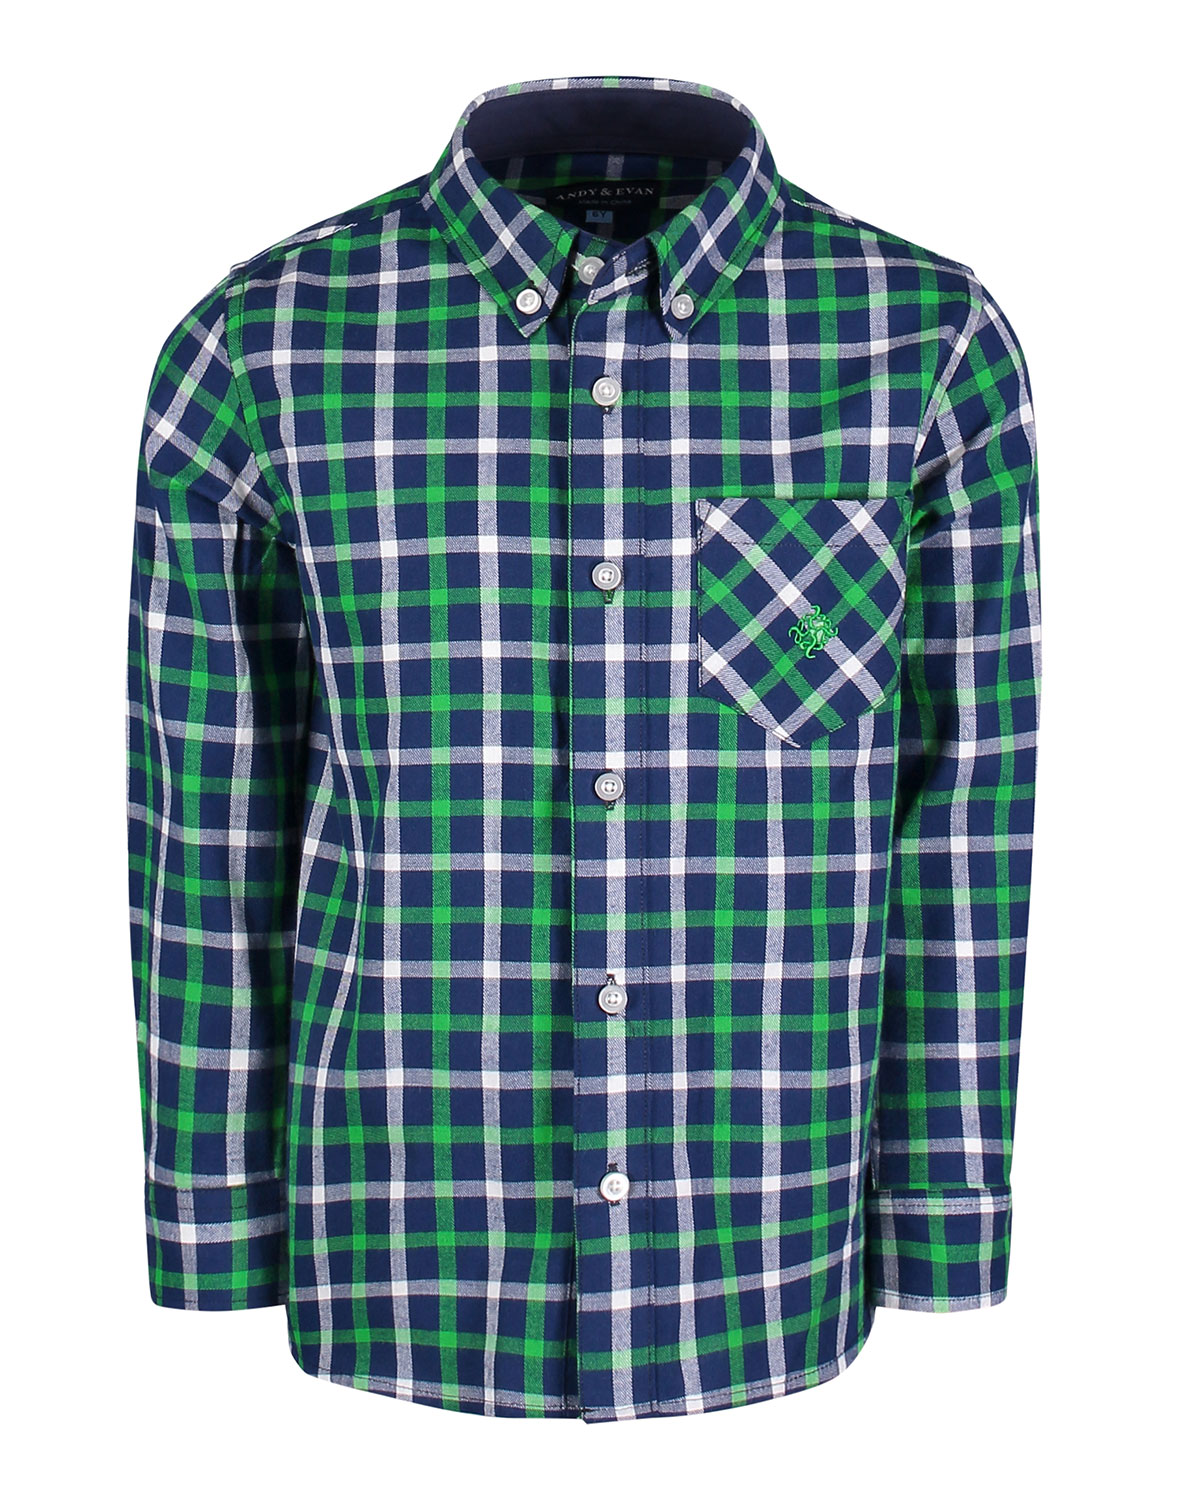 ANDY & EVAN Long-Sleeve Flannel Button-Down Shirt, Size 2-7 in Blue